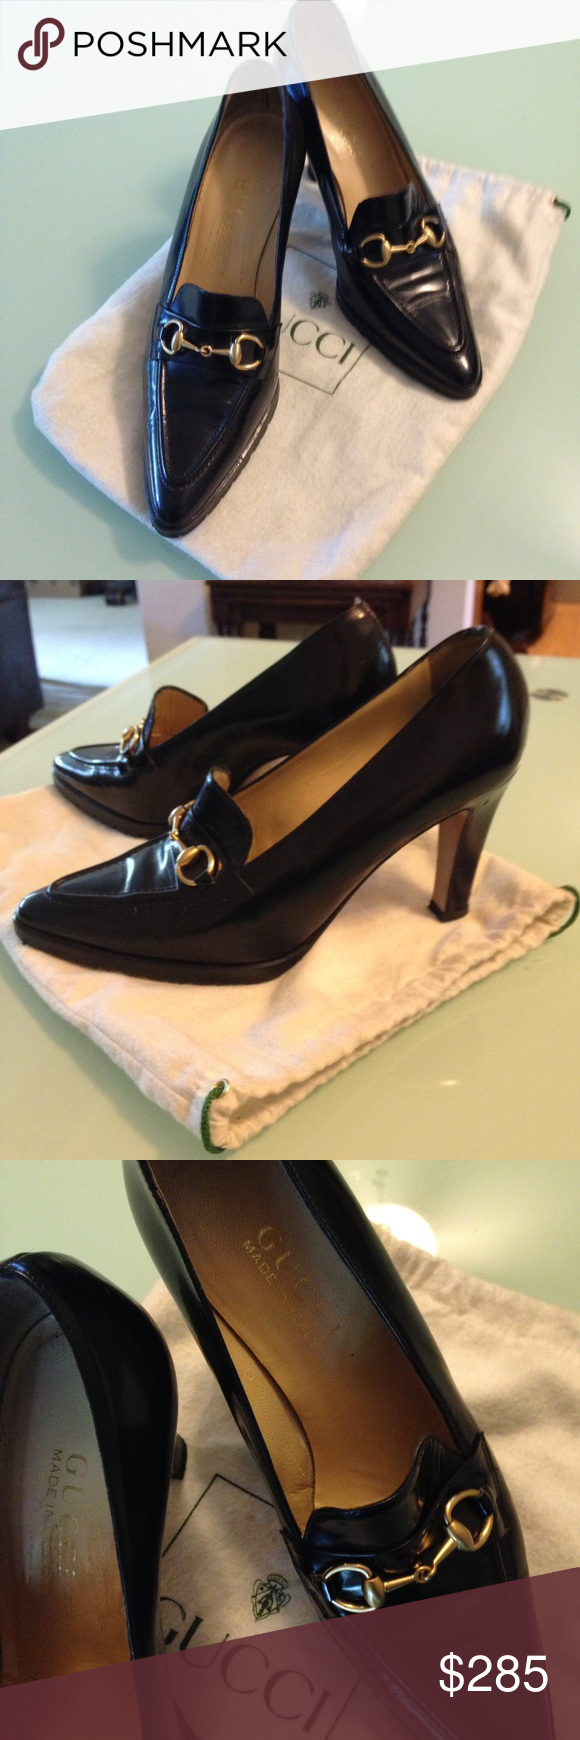 83bf1fcb863 Classic vintage Gucci shoes NWOT-I wore them in the house once! Original  dust